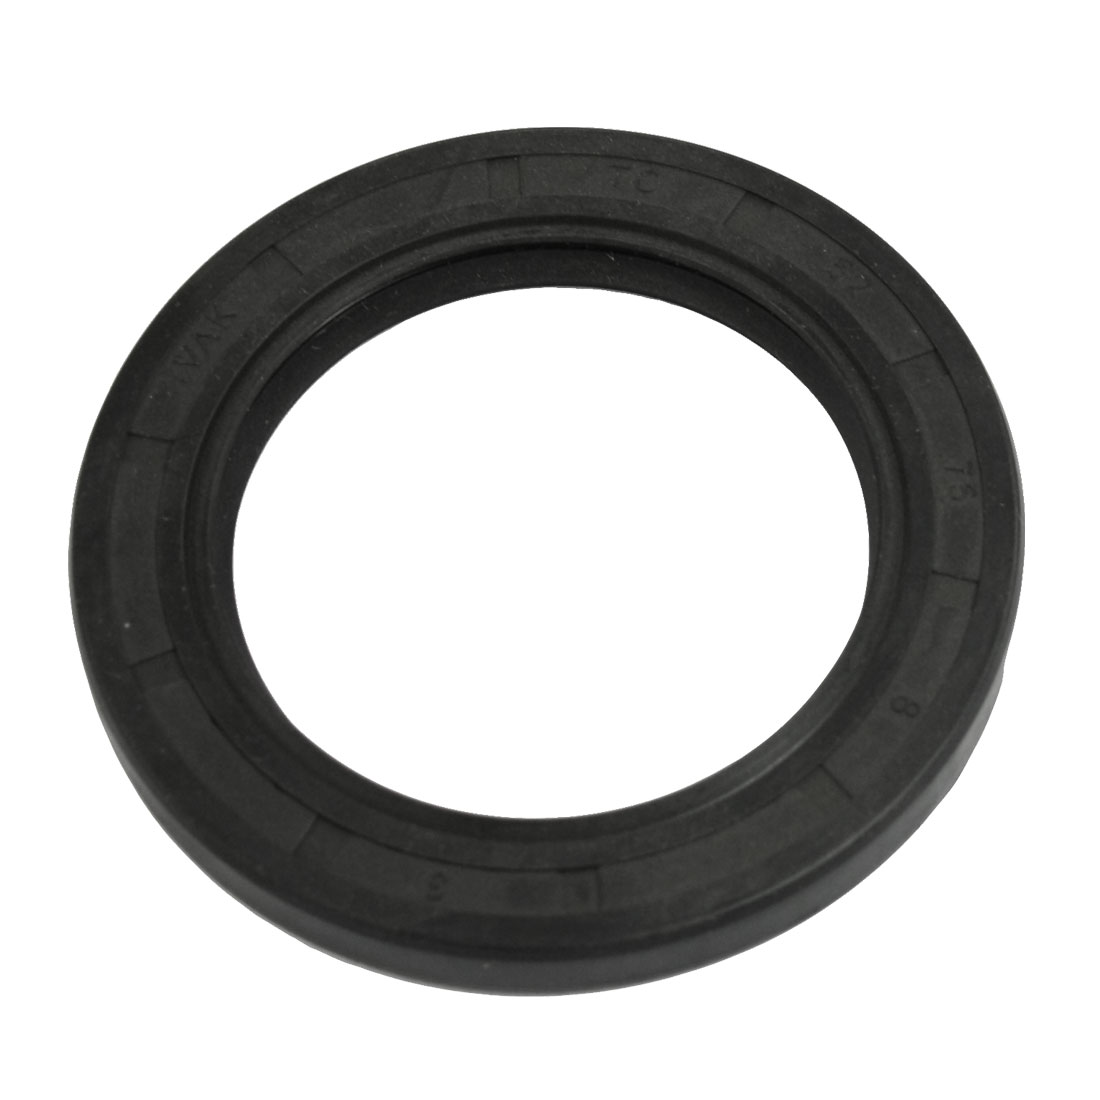 Black Nitrile Rubber Double Lip TC Oil Shaft Seal 52mm x 75mm x 8mm